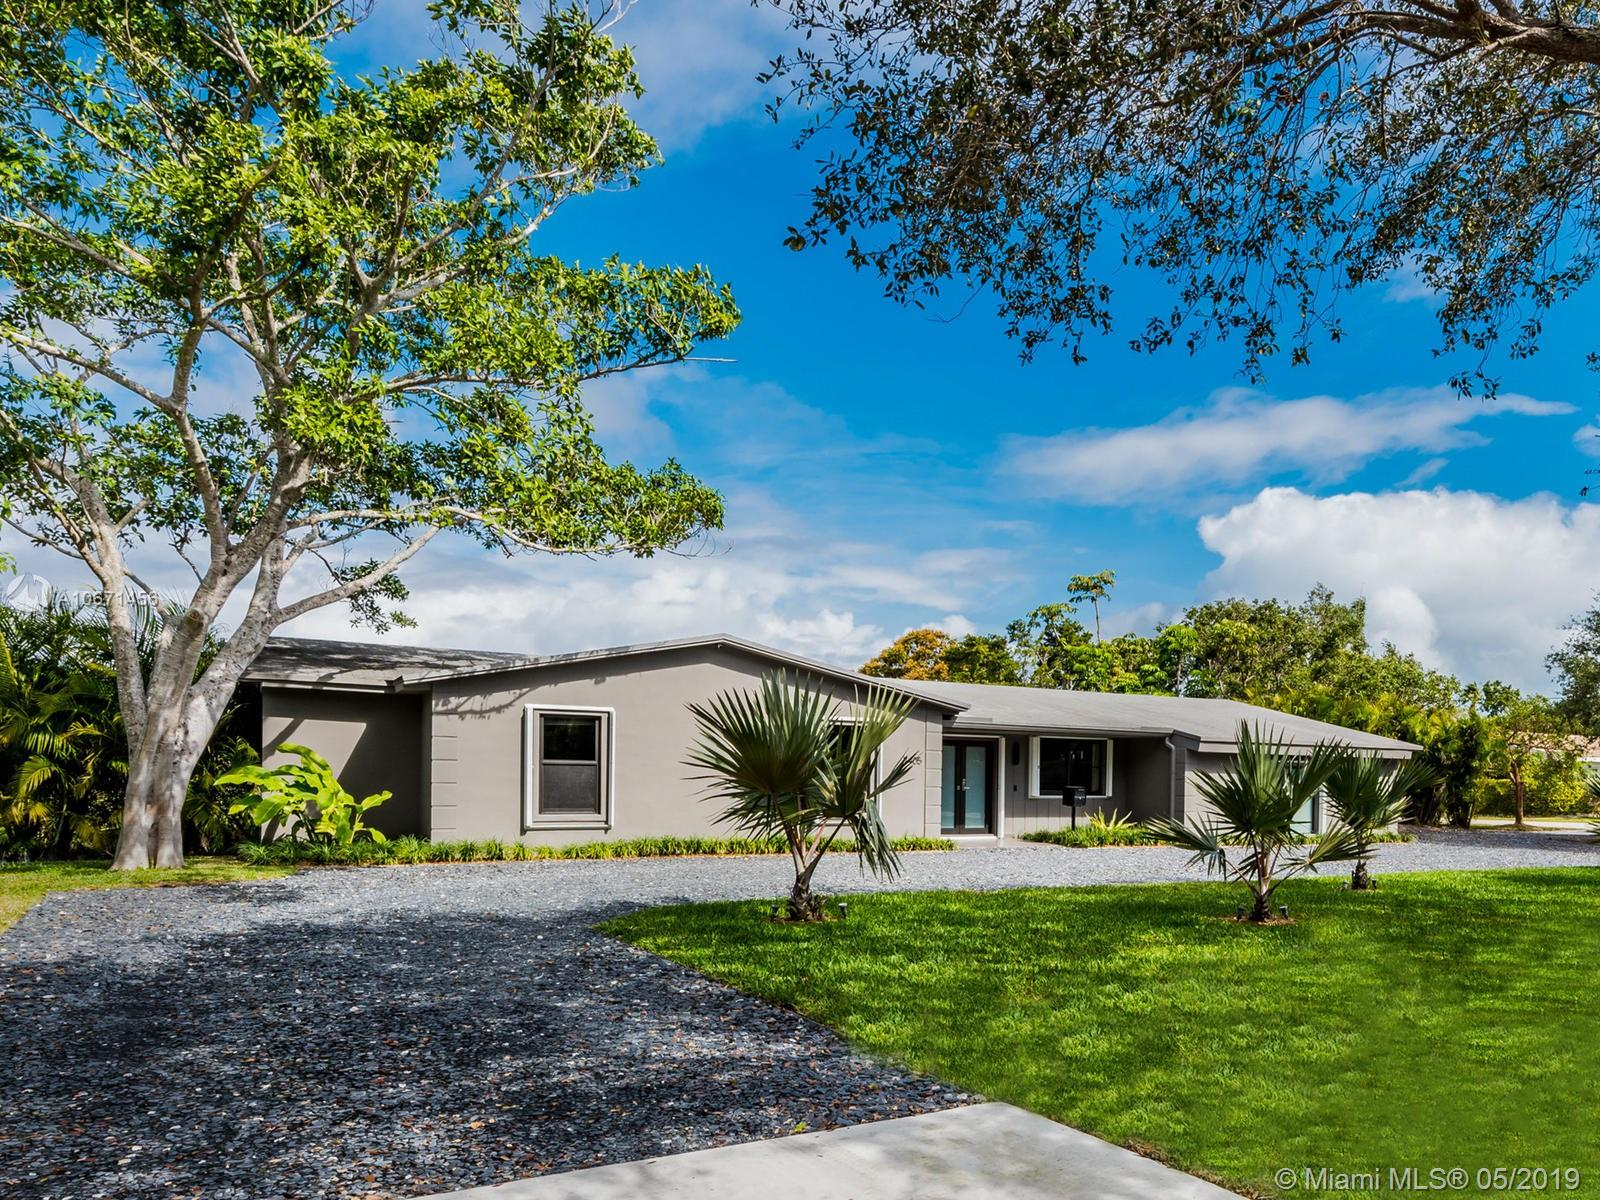 7405 SW 122nd St, Kendall, Florida